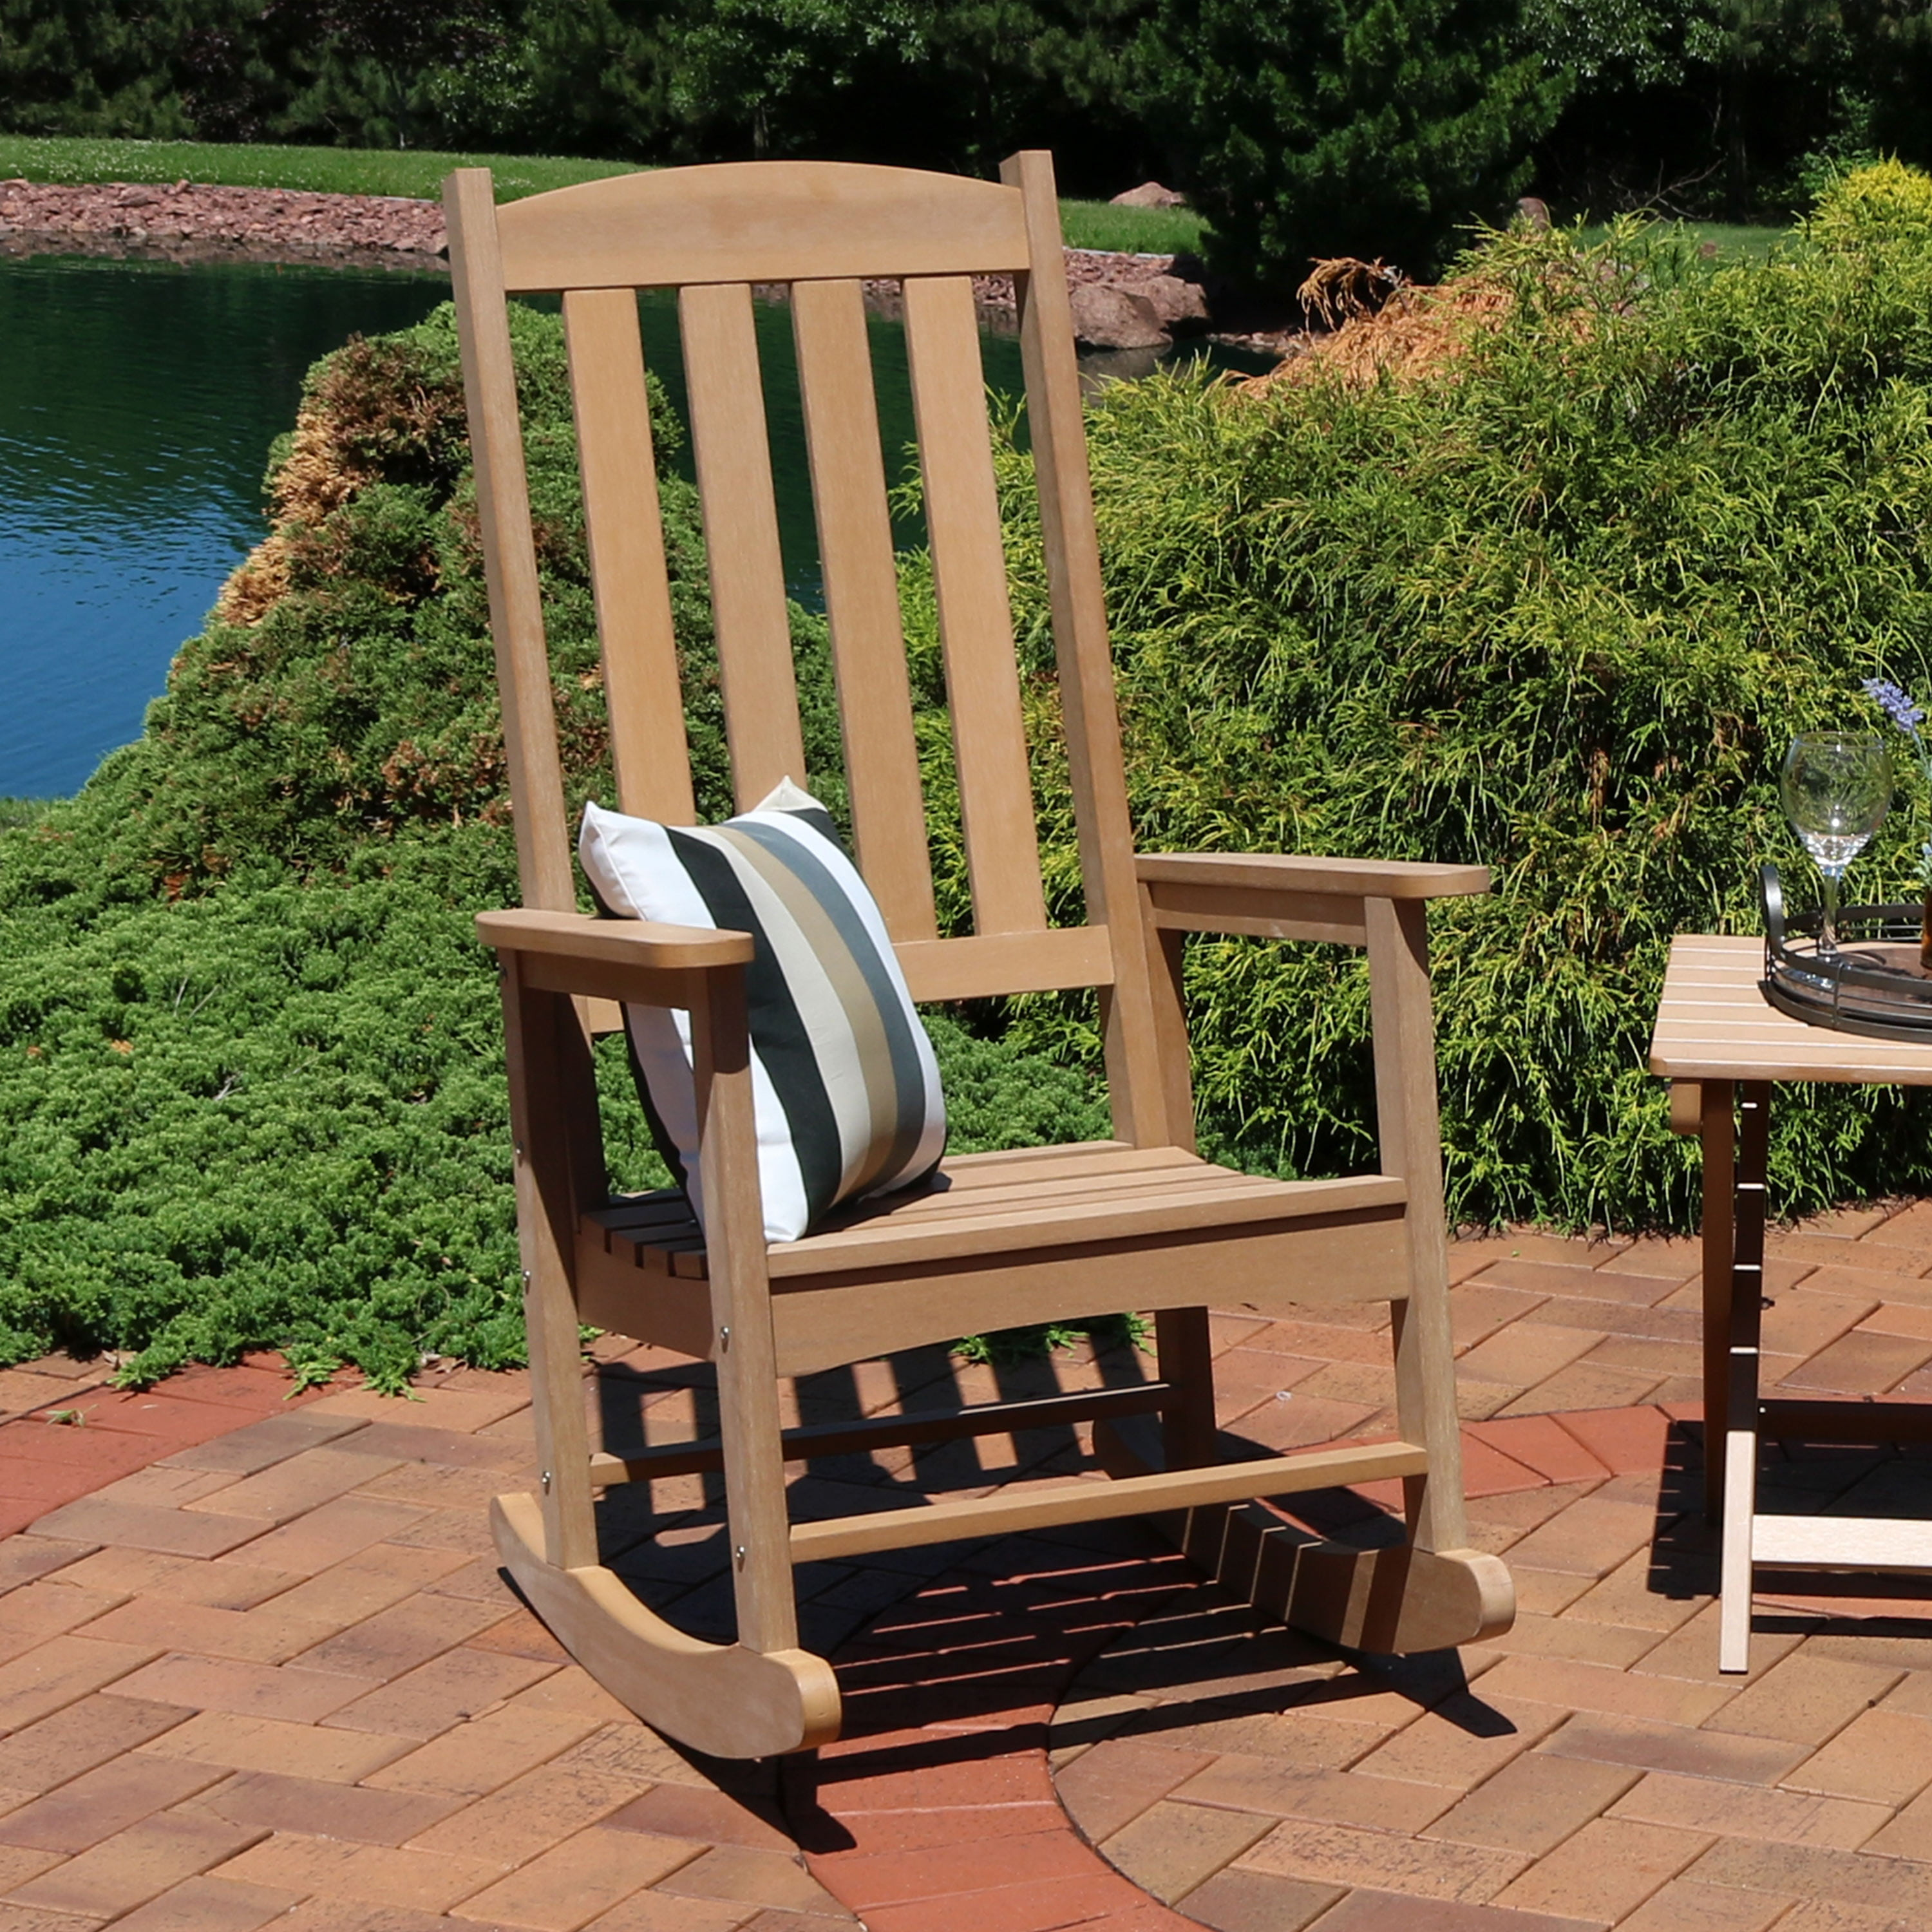 Sunnydaze Outdoor Patio Rocking Chair All Weather Faux Wood Design Brown